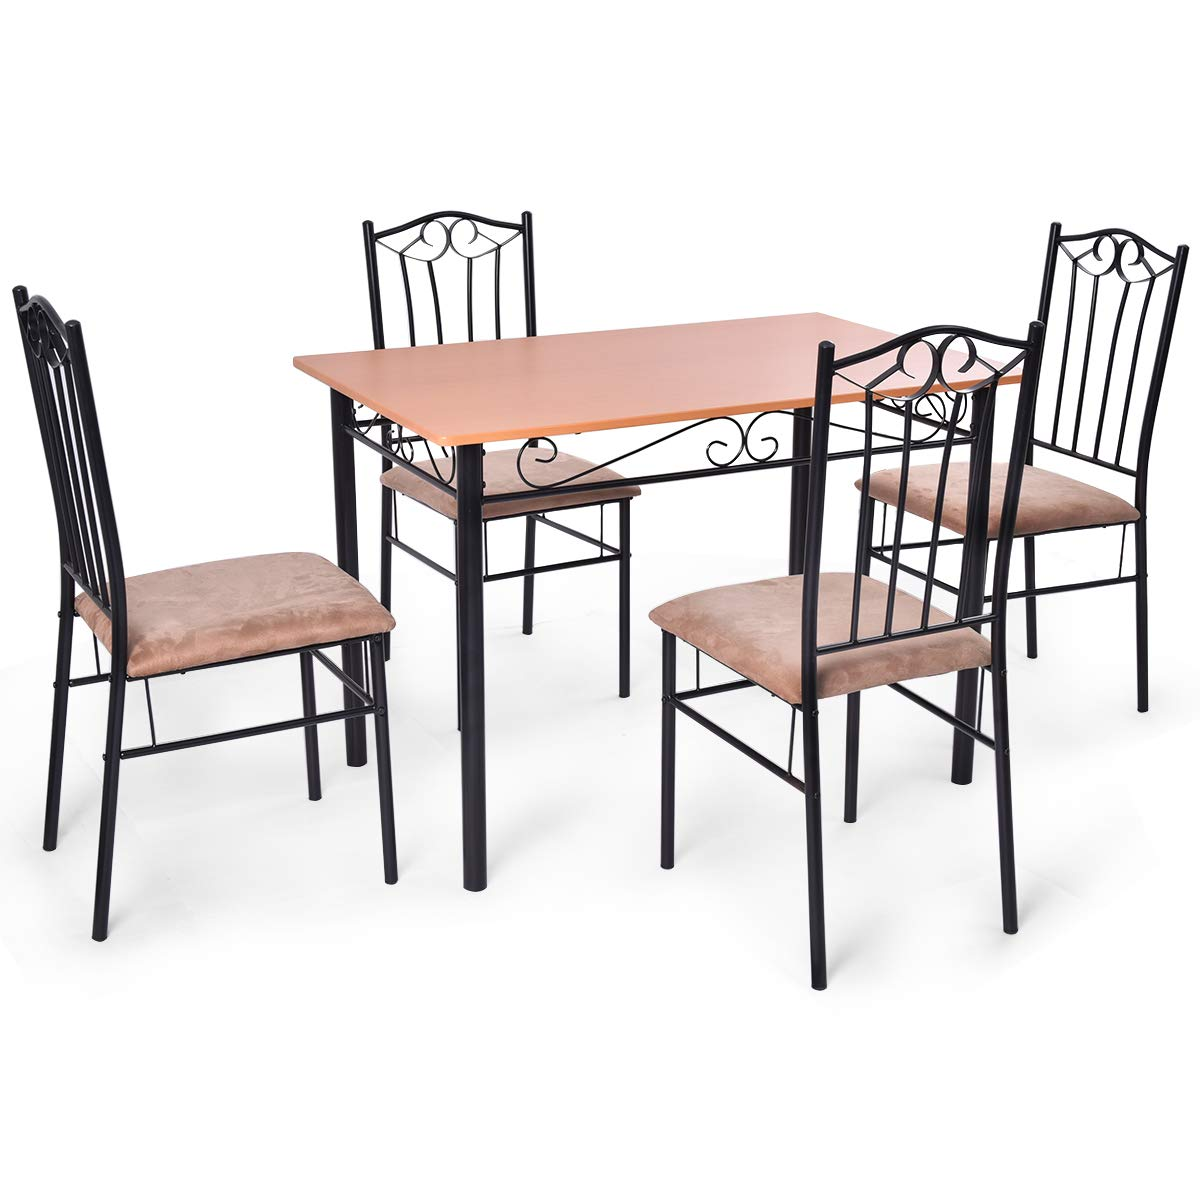 Tangkula 5 Piece Dining Table Set Vintage Wood Top Padded Seat Dining Table and Chairs Set Home Kitchen Dining Room Furniture by Tangkula (Image #4)